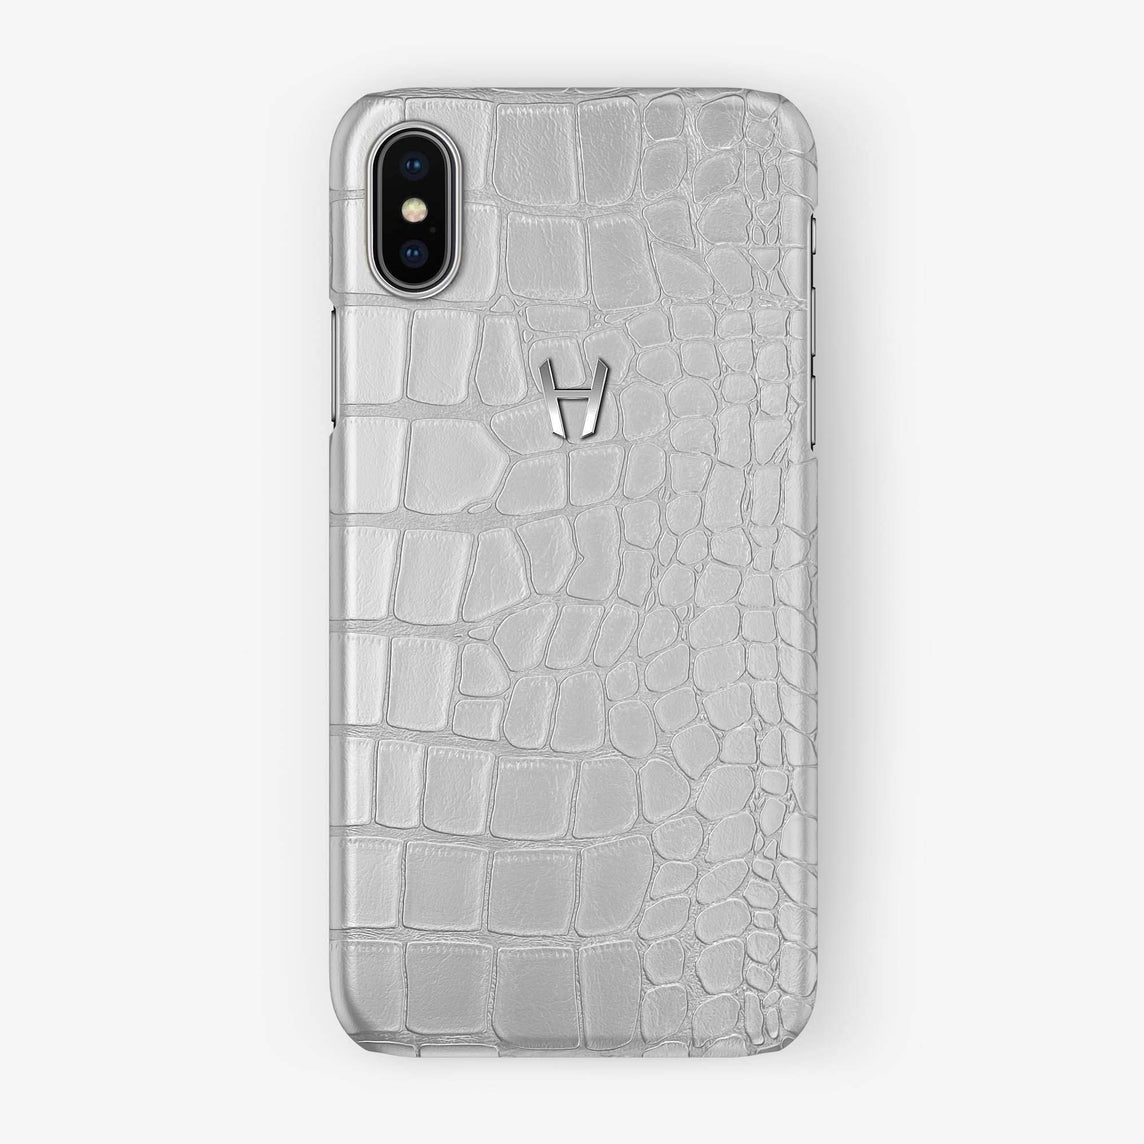 Alligator [iPhone Case] [model:iphone-xsmax-case] [colour:white] [finishing:stainless-steel] - Hadoro